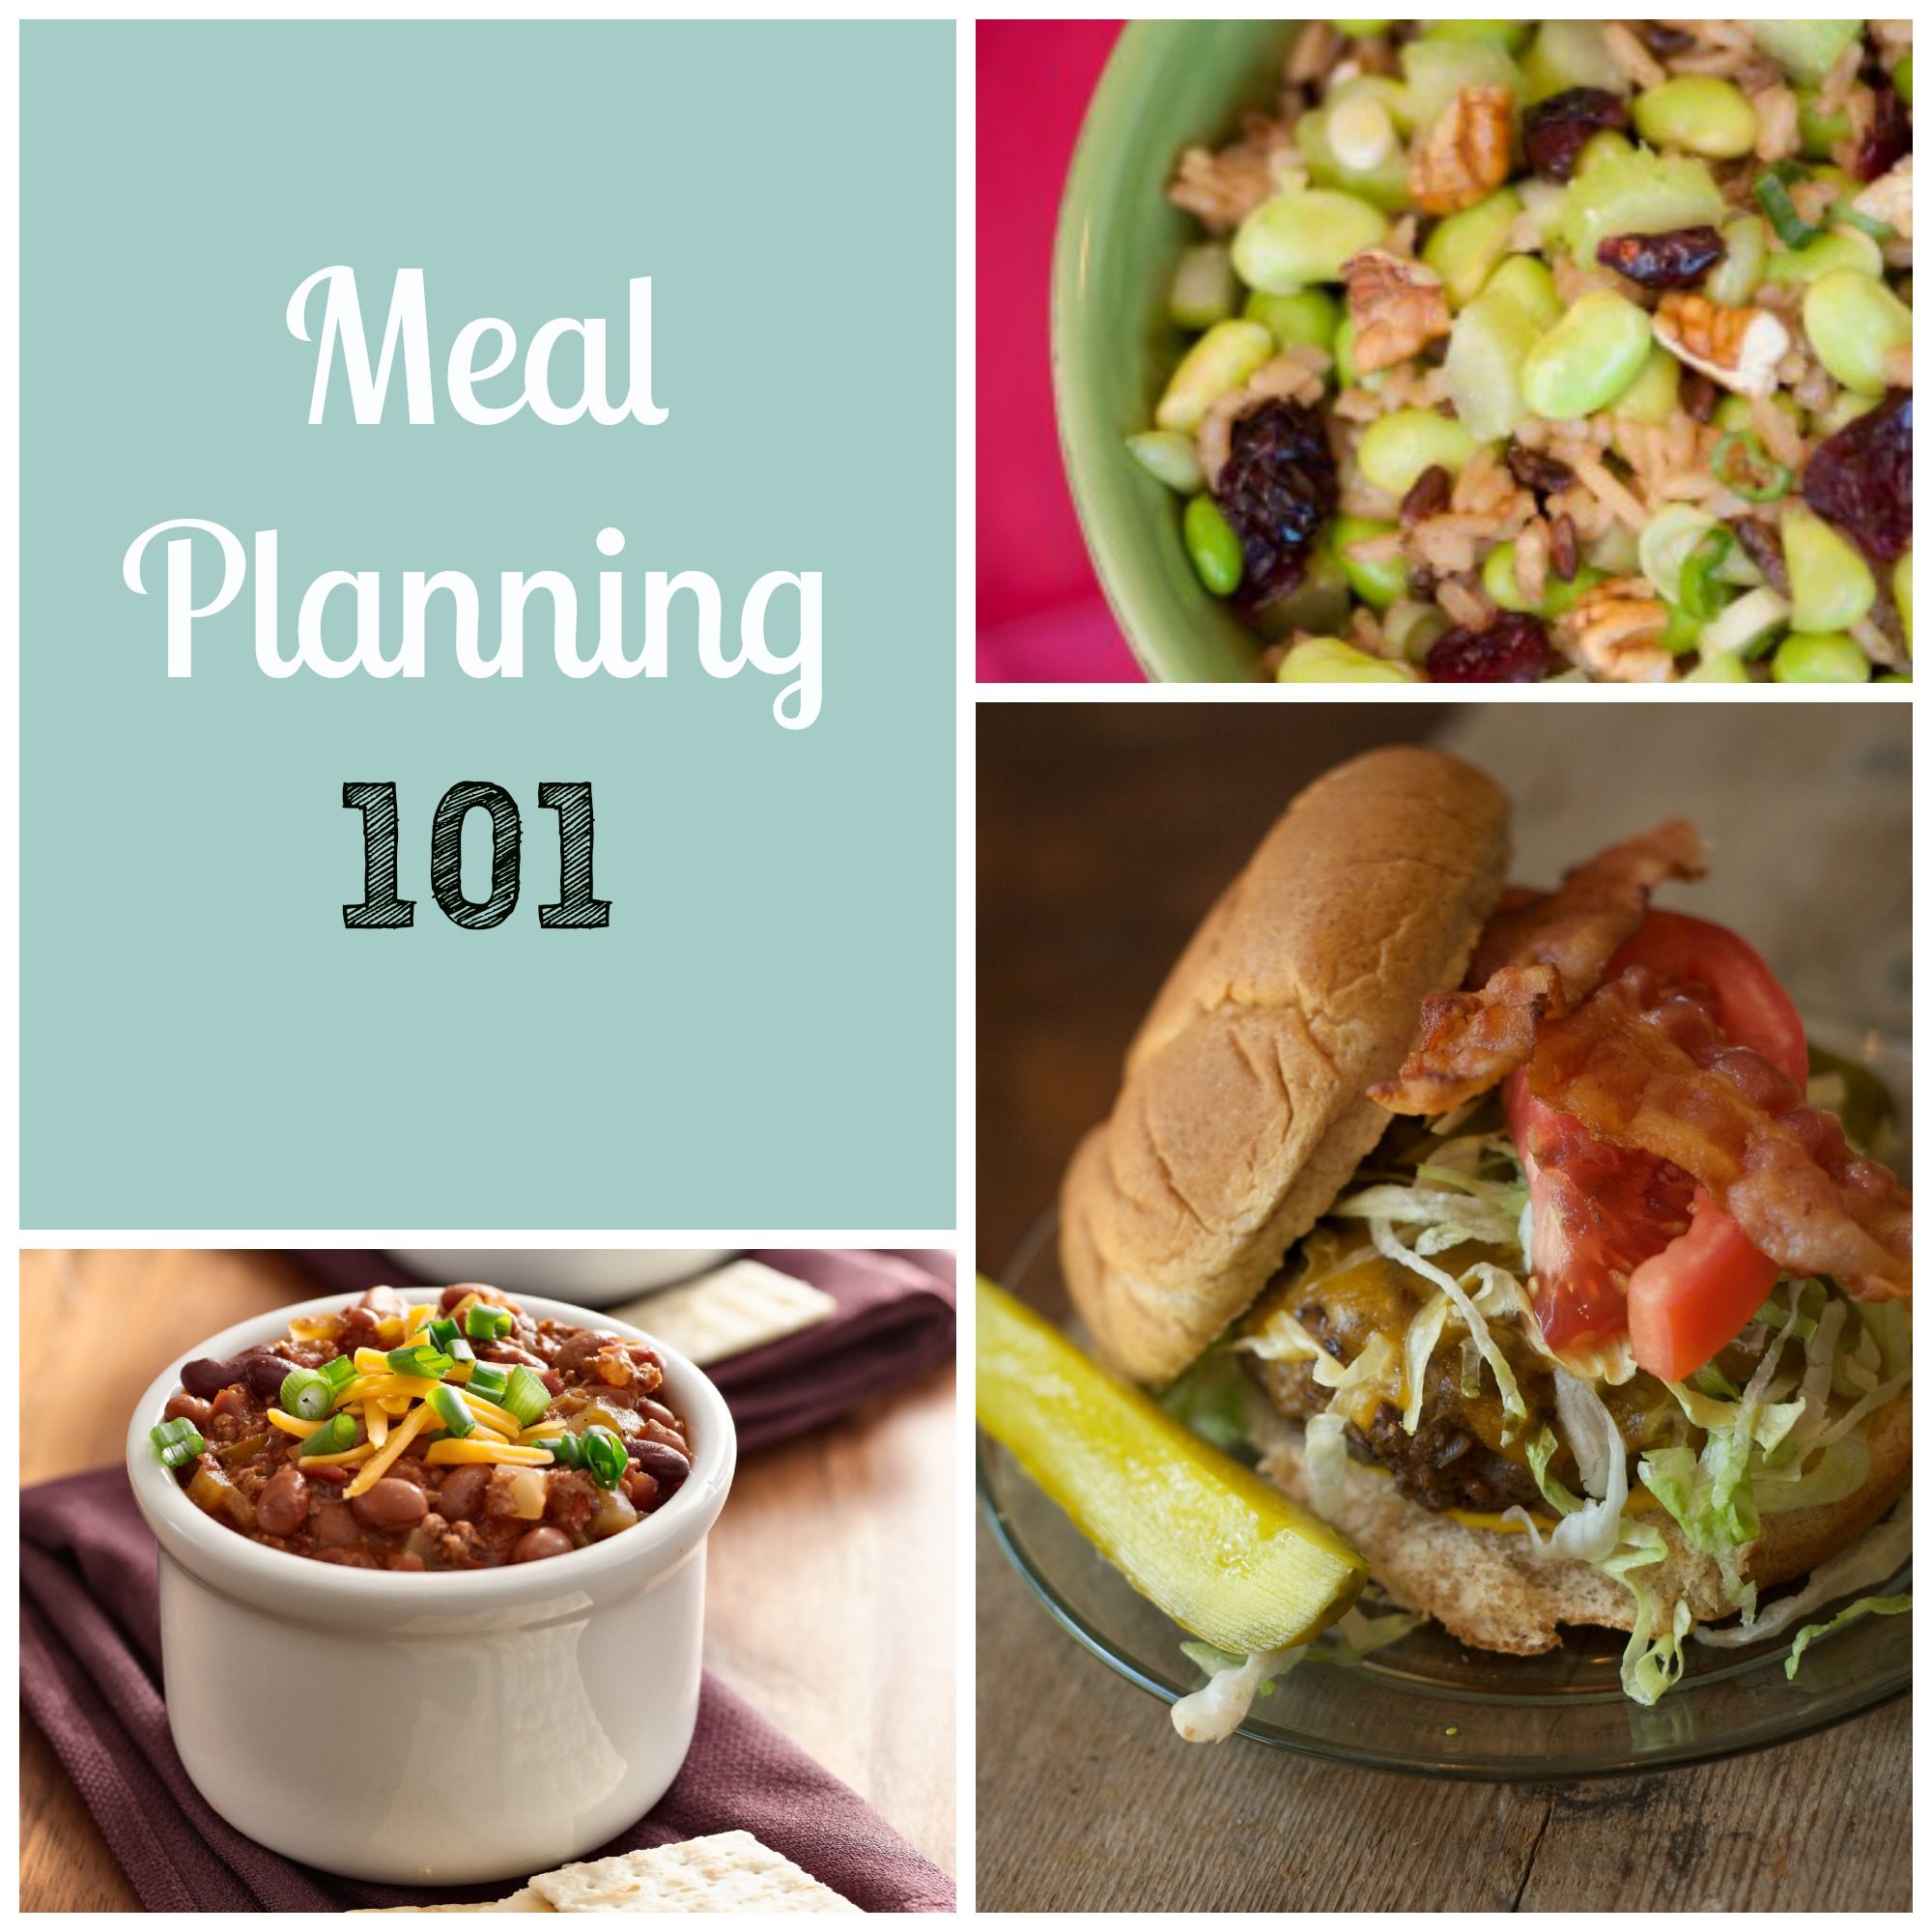 Clean Eating Meal Planning Tips Tricks and a Free Printable Grocery List from Heather of MyLifeWellLoved.com // Meal Planning 101 and how to save money without coupons from My Life Well Loved